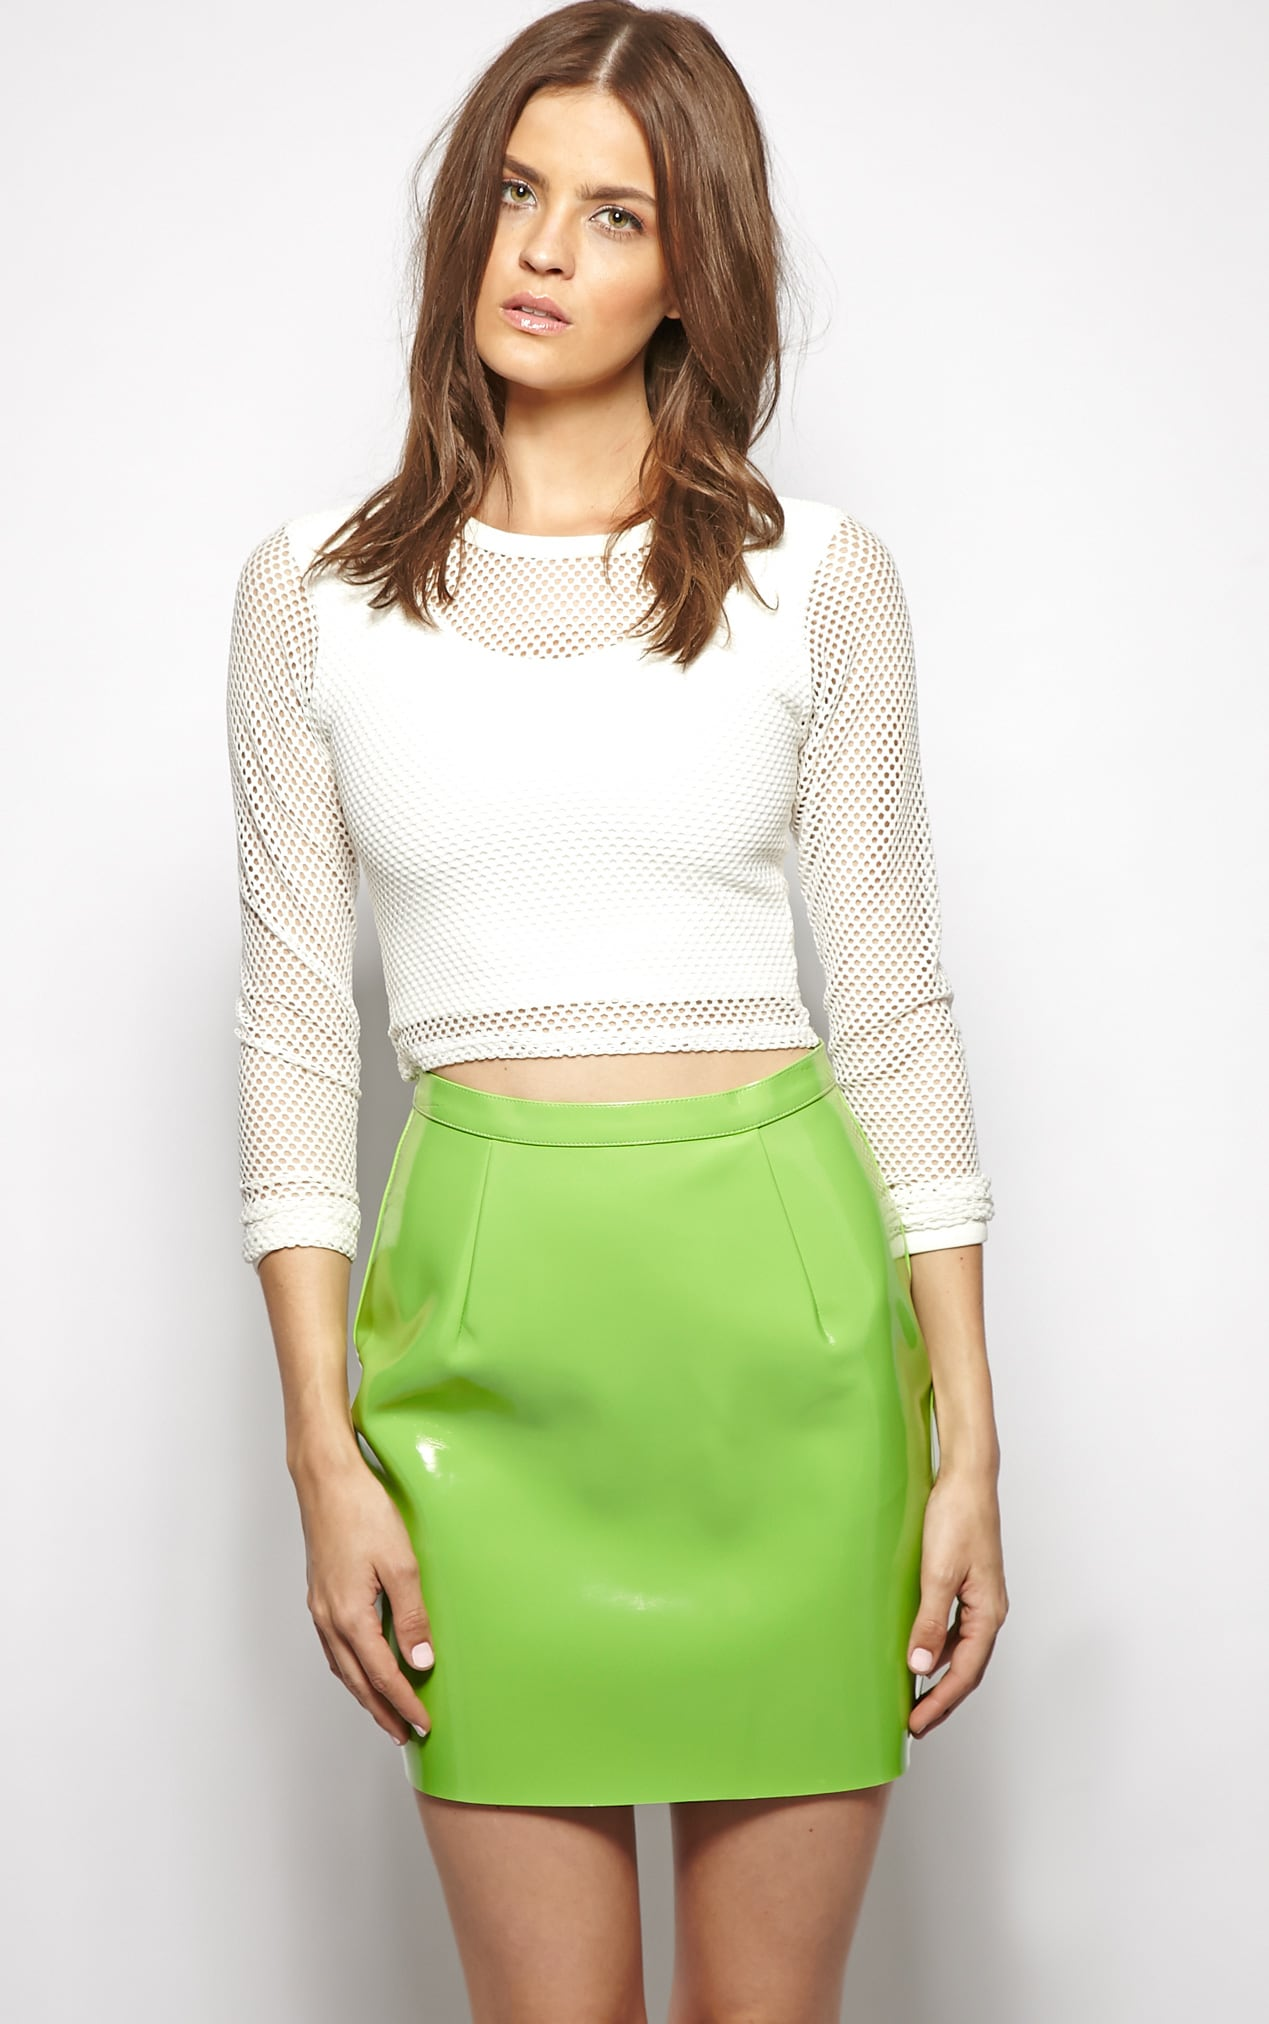 Natalya Green PVC Mini Skirt 4